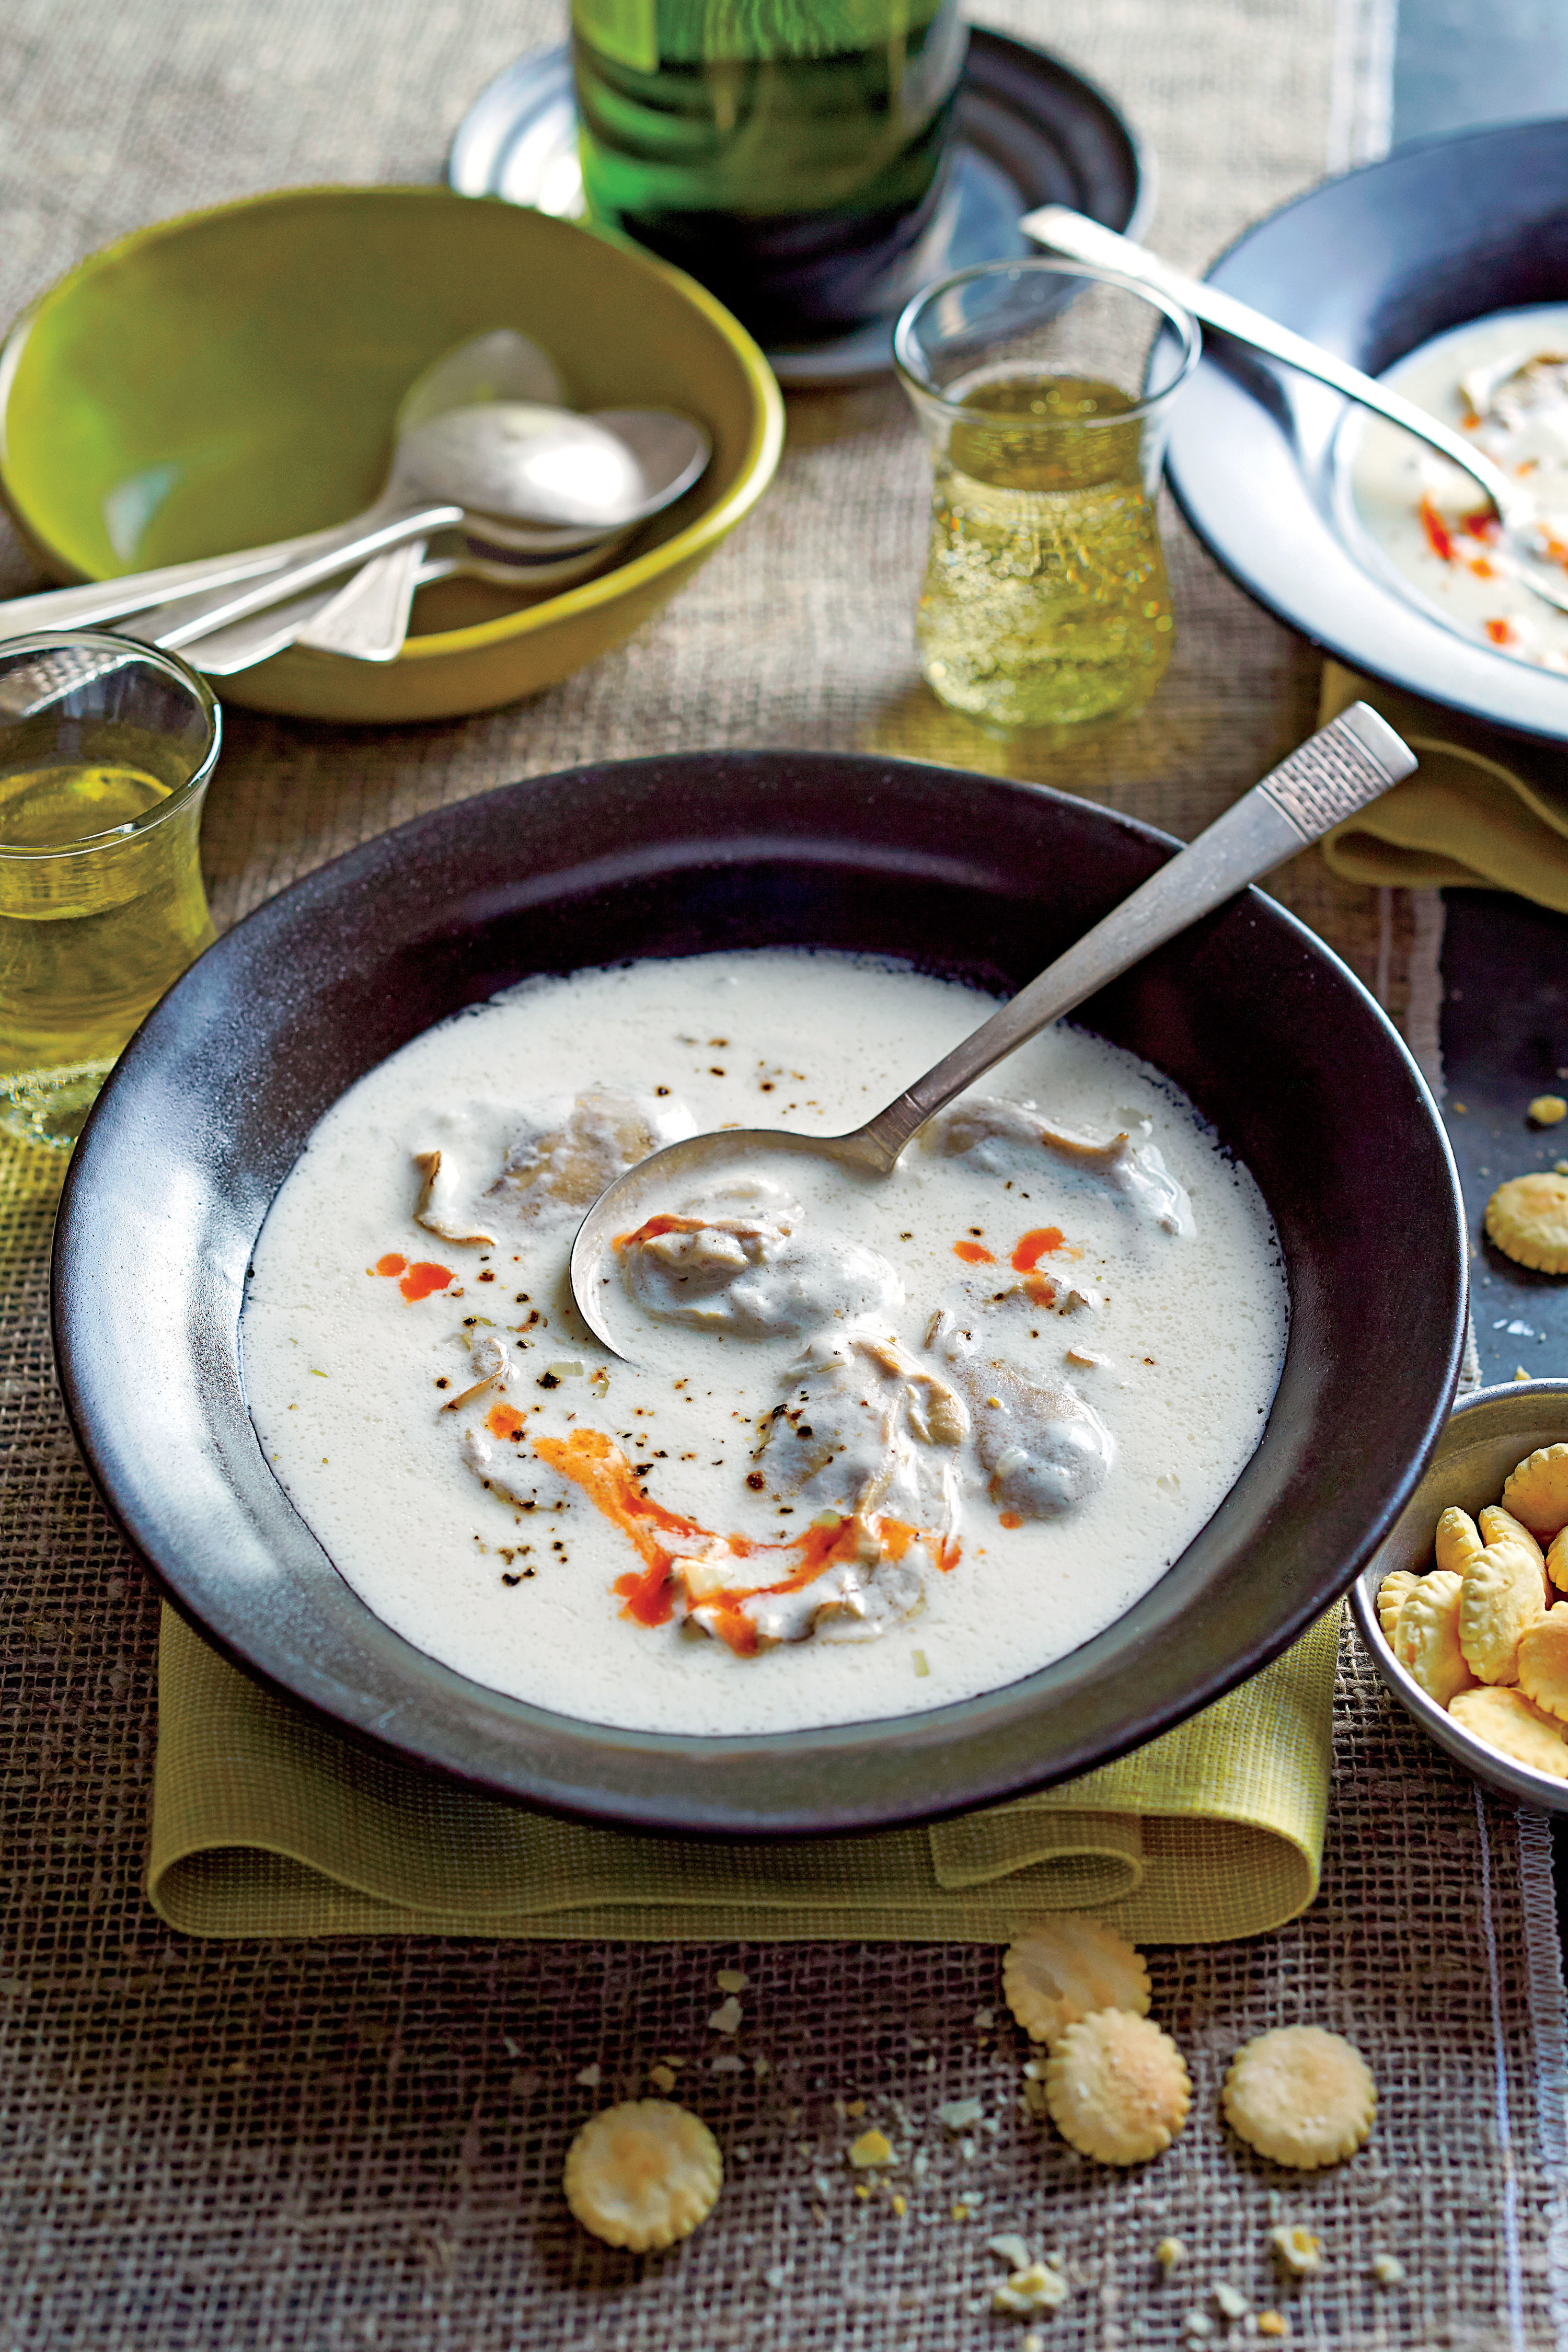 All We Want for Christmas is Oyster Stew–Here's Why